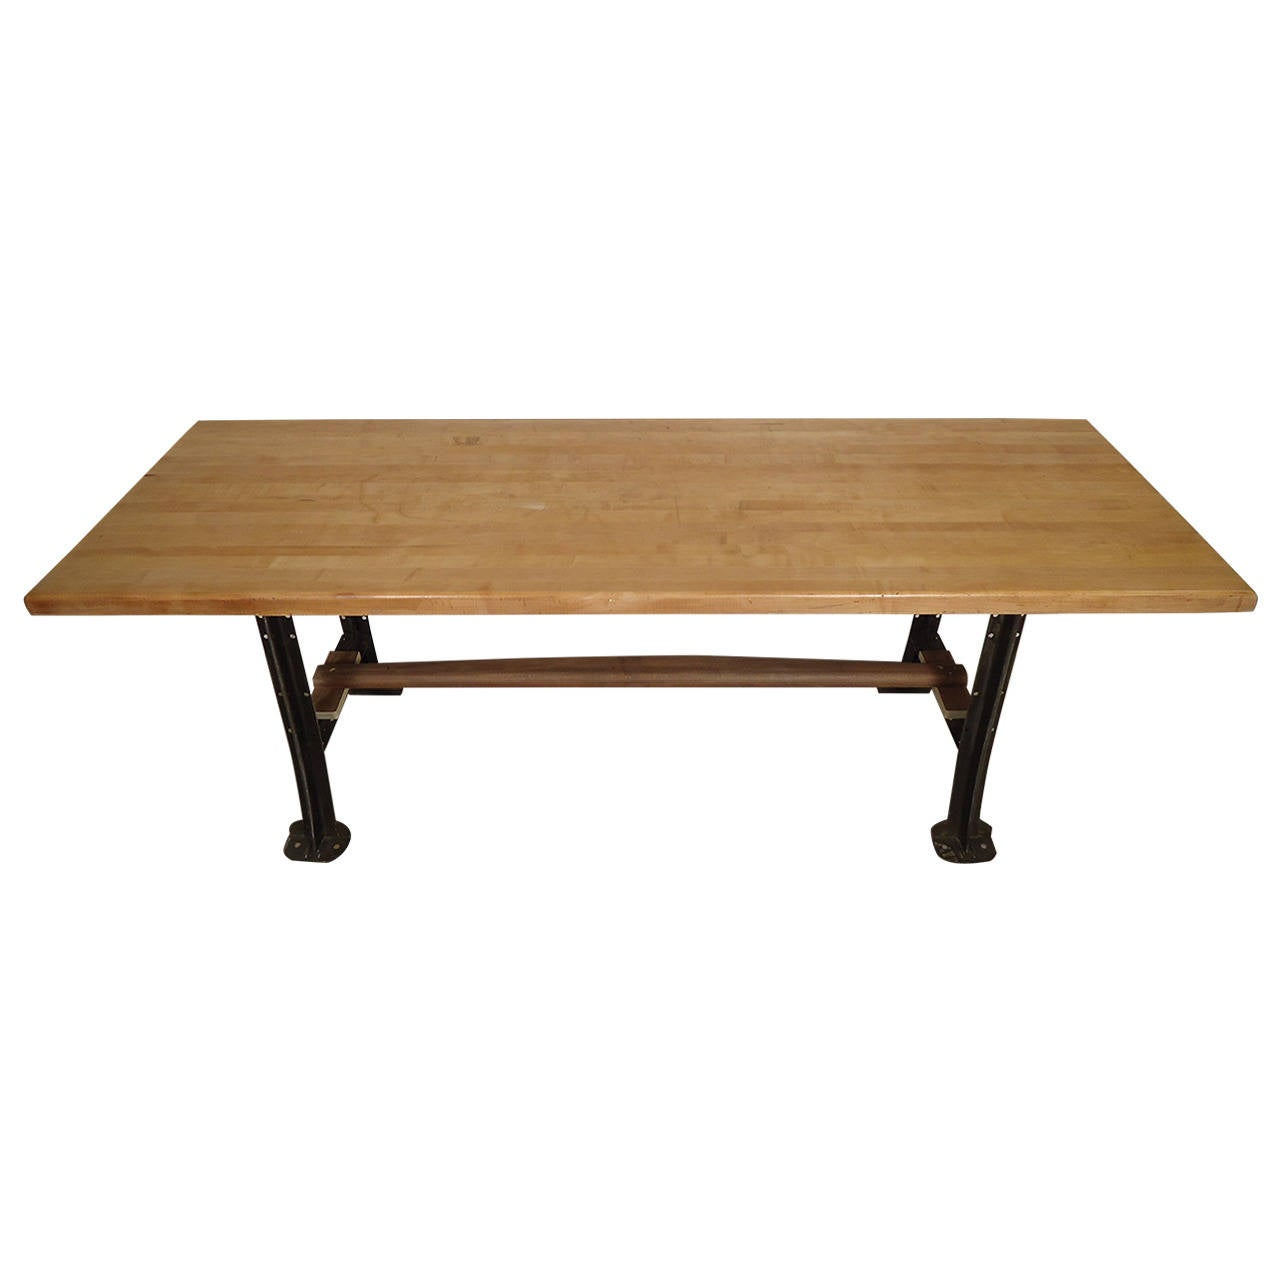 Massive Butcher Block Dining Table On Solid Iron Legs For Sale At